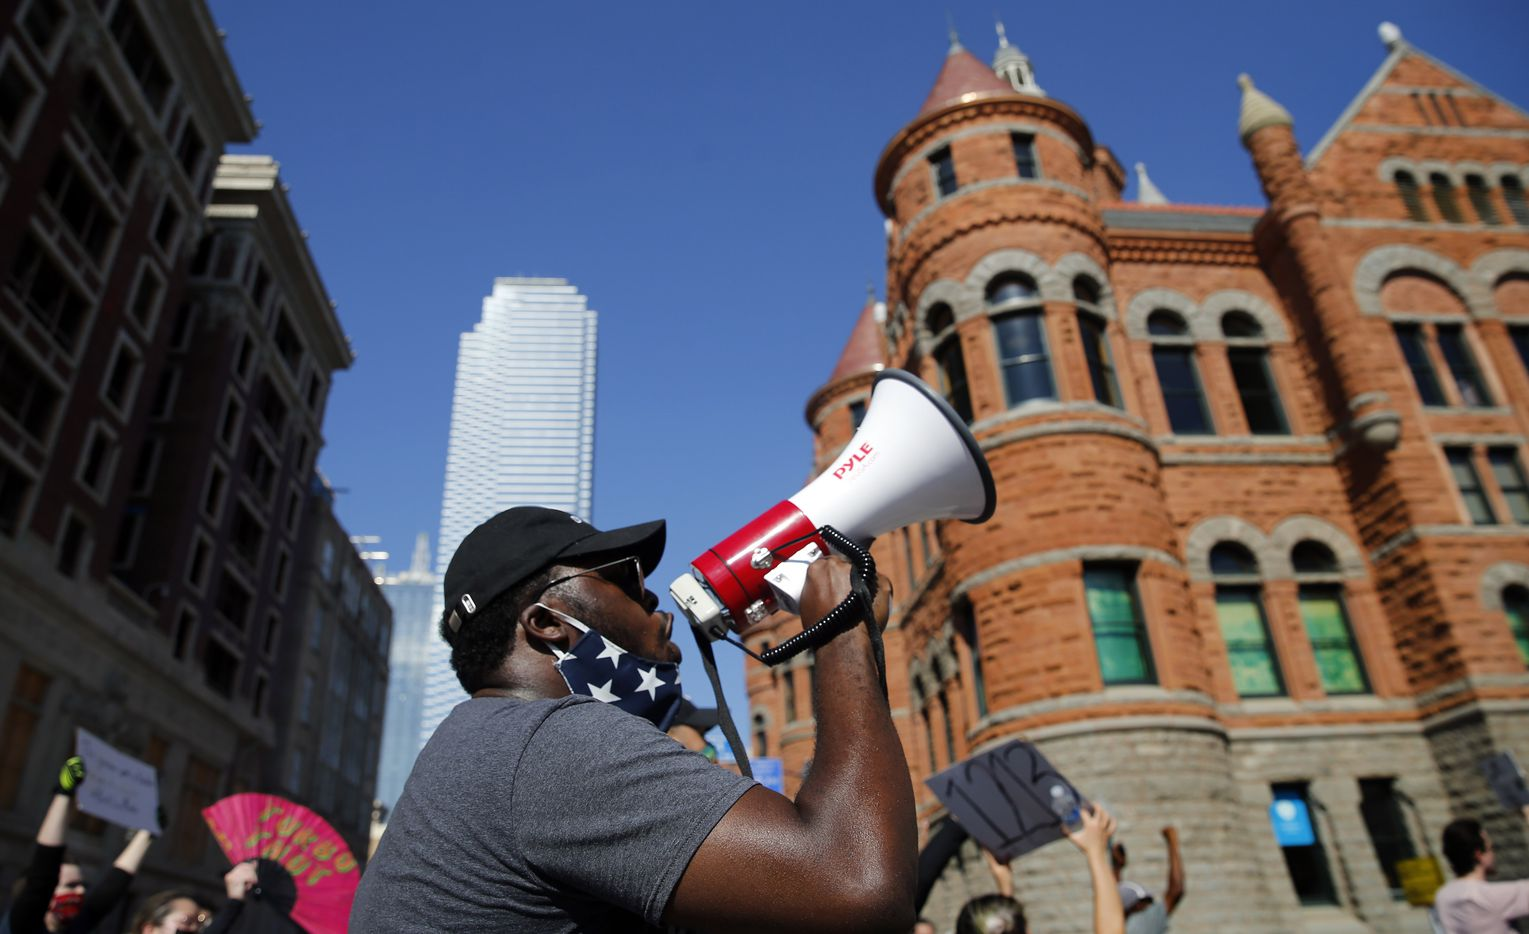 With his bullhorn, Edmund Simpson II of Dallas leads protestors in a chant as the group supporting Black Lives Matters marches back to Dallas City Hall from Dealey Plaza, Wednesday, June 3, 2020. They marched past the Old Red Courthouse in downtown. (Tom Fox/The Dallas Morning News)